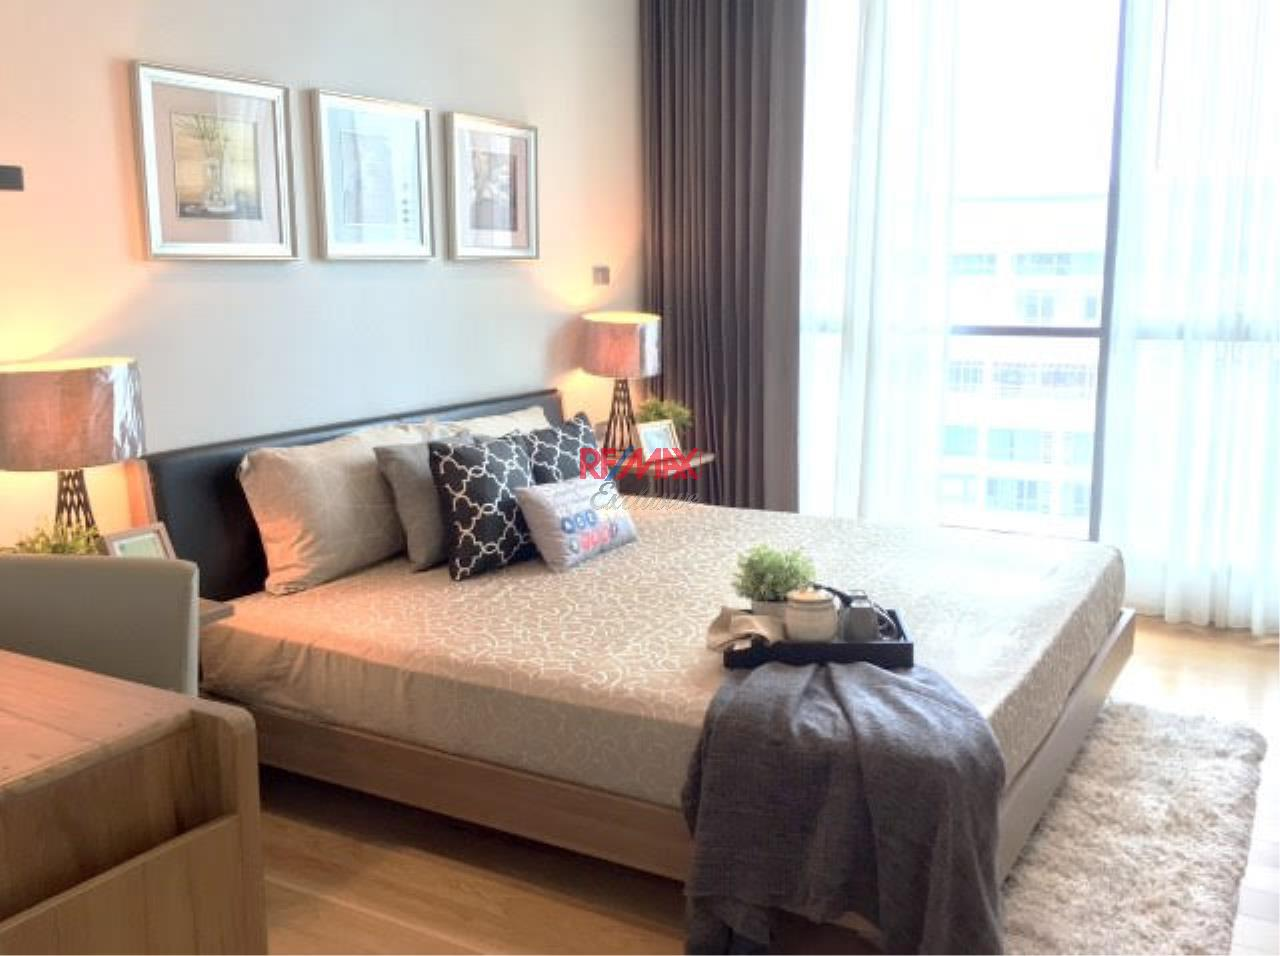 RE/MAX Exclusive Agency's Condominium in town For Rent 40,000 THB  2